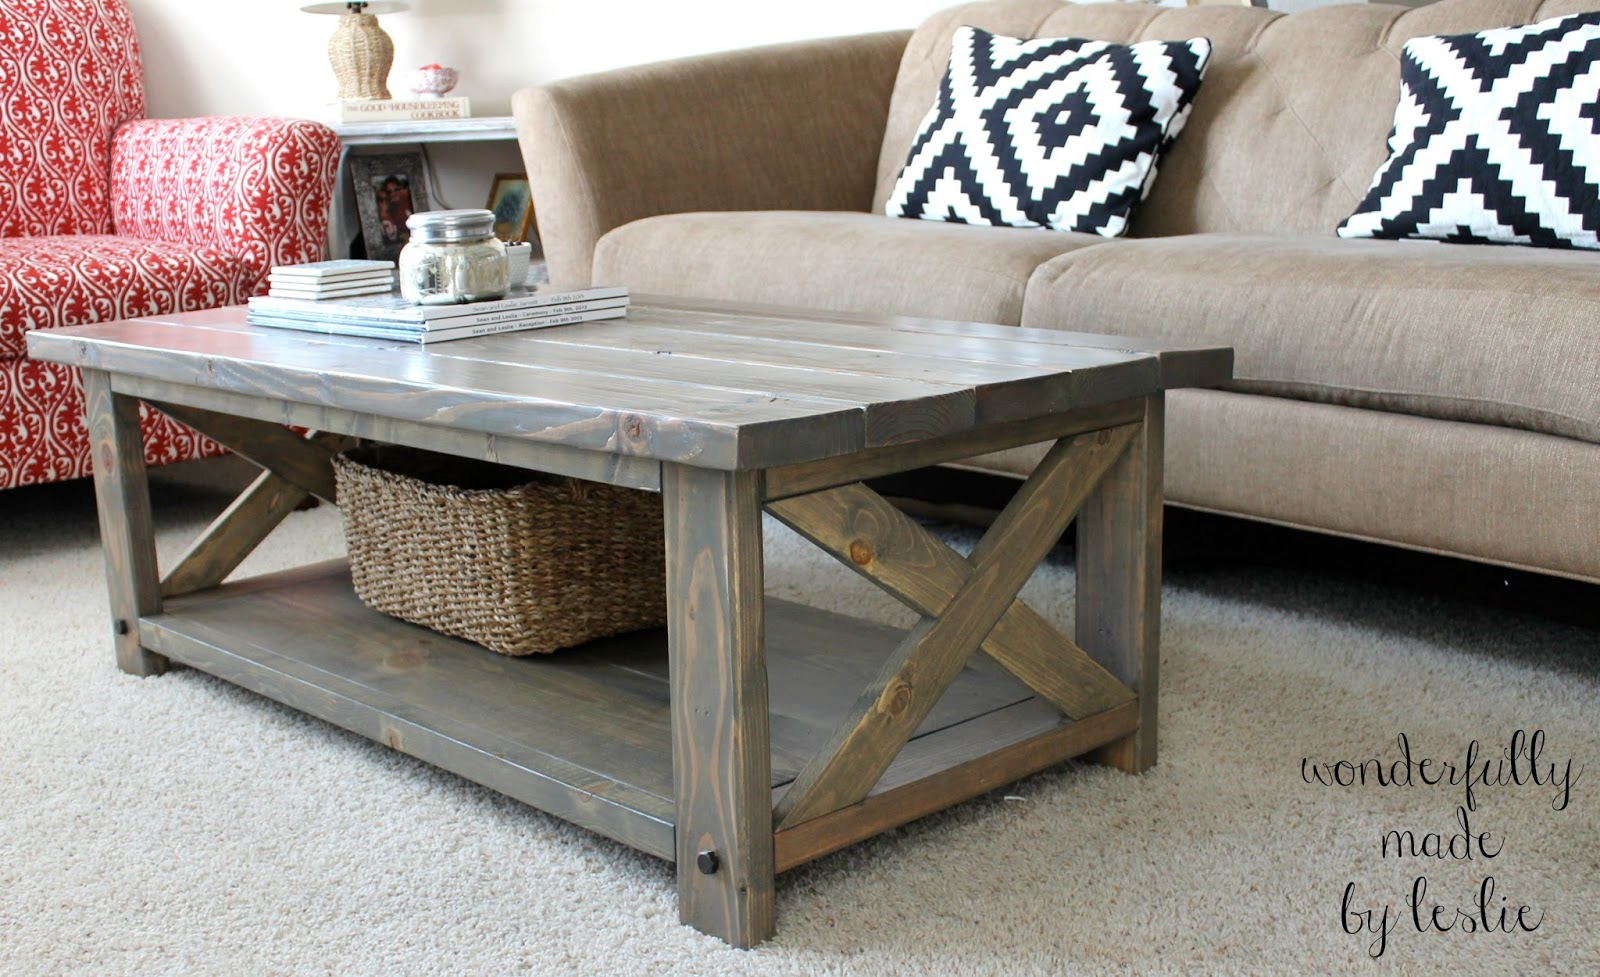 Wonderfully made finished diy coffee table Homemade coffee table plans